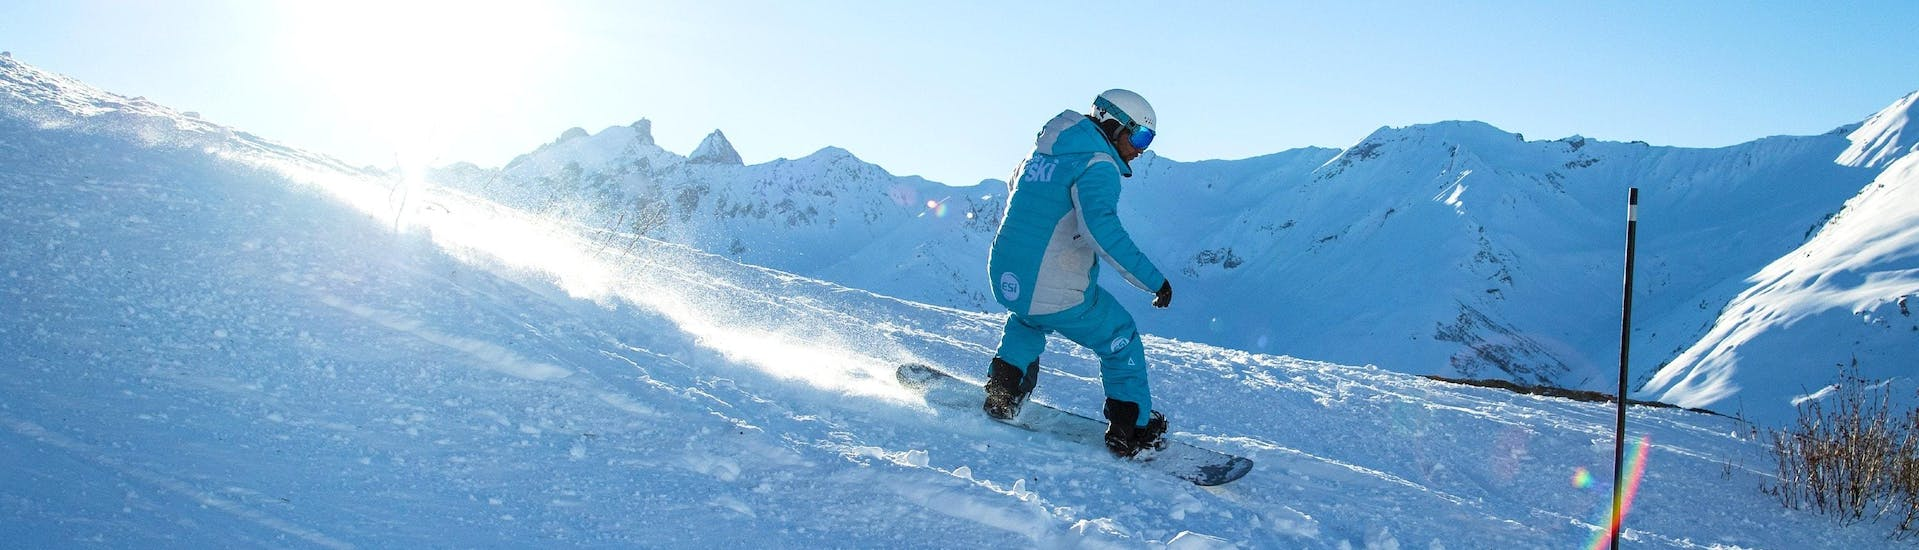 A snowboarder is sliding down a slope during his Private Snowboarding Lessons for All Levels - Afternoon with the ski school ESI Ski Family in Val Thorens.